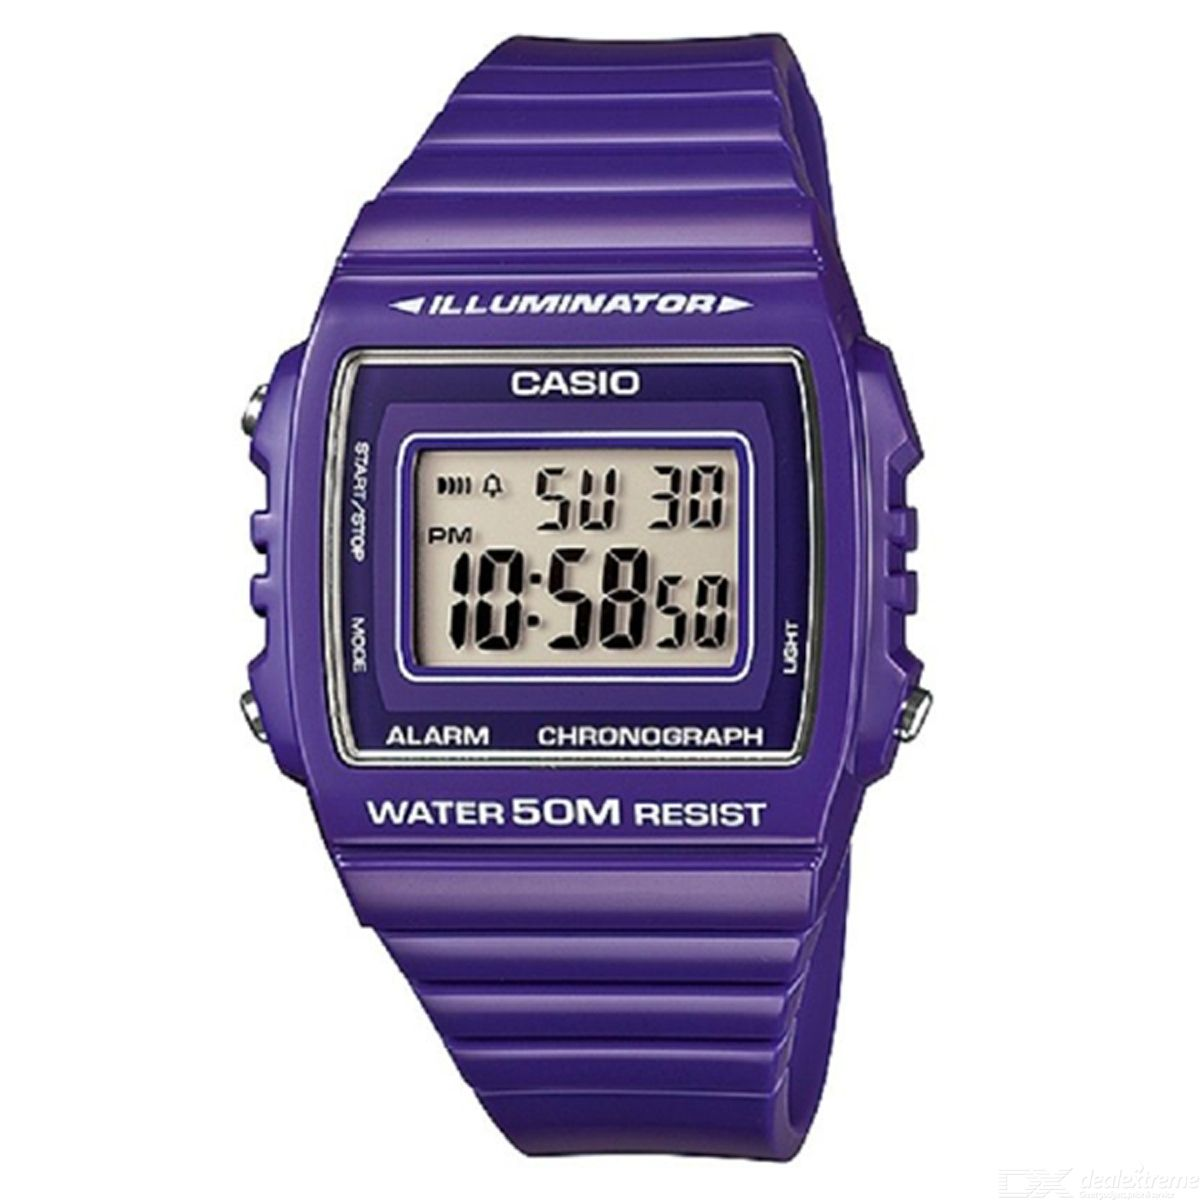 CASIO W-215H-6AVDF Men's Wristwatch - Purple (Without Box)